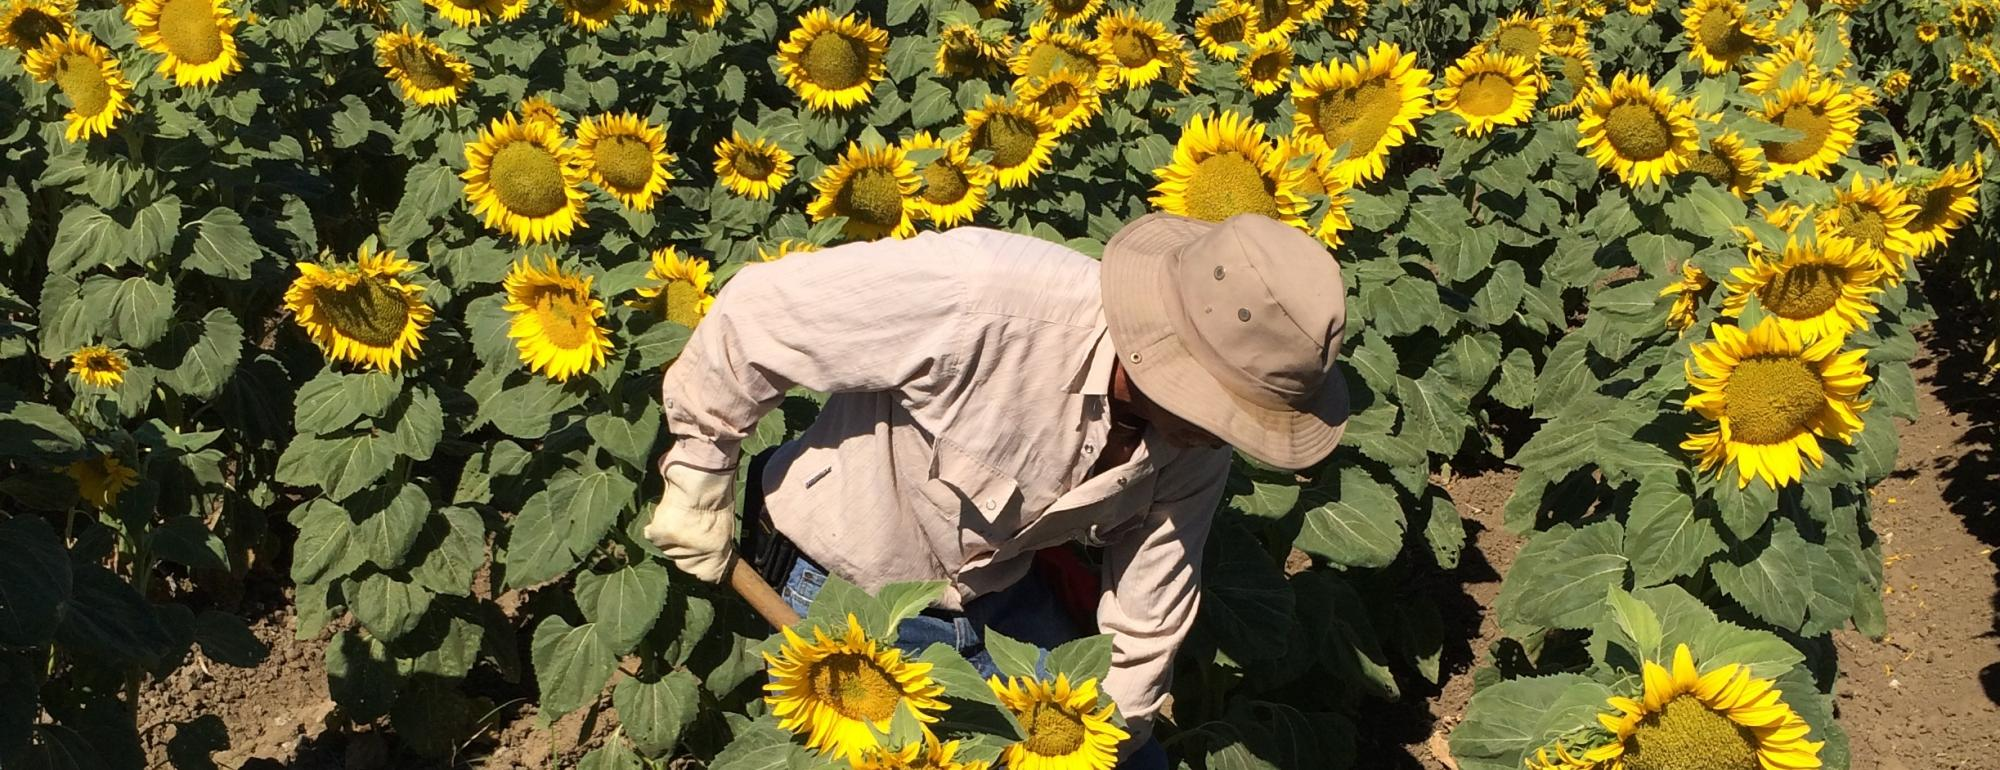 Man tending to sunflower crop in large field of yellow sunflowers